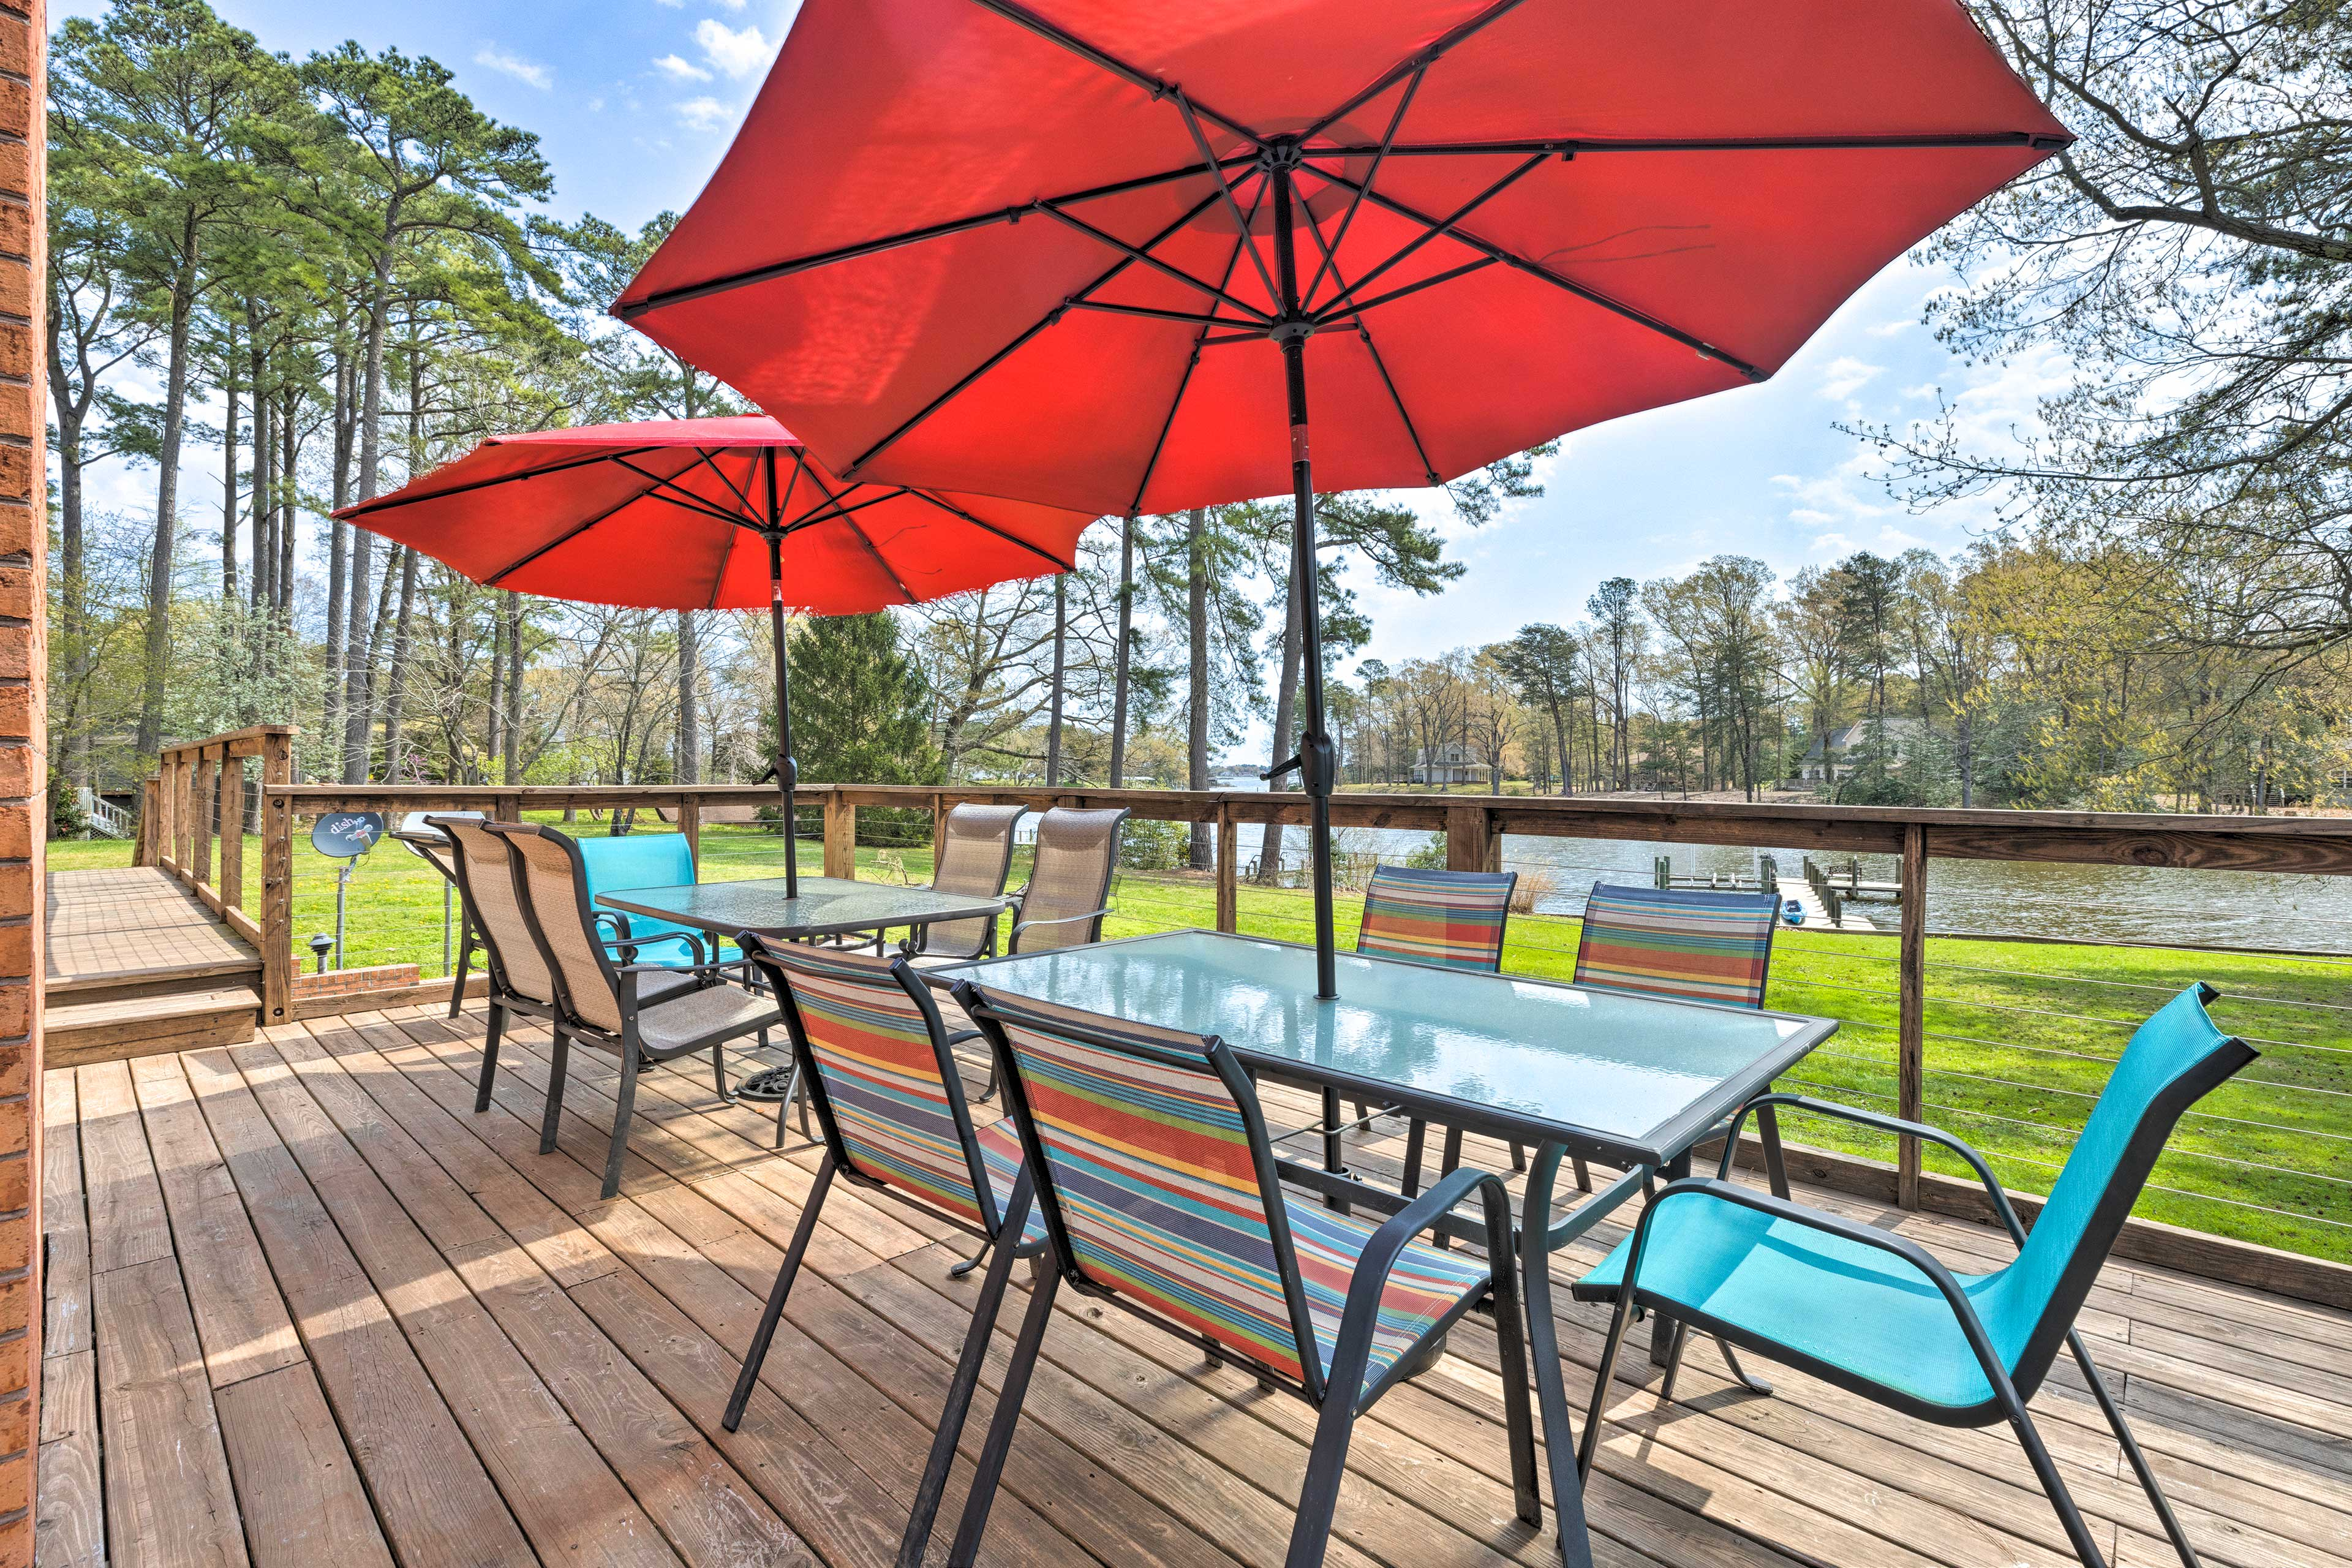 Reedville Vacation Rental Home   5BR   3.5BA   3,800 Sq Ft   No Steps Required